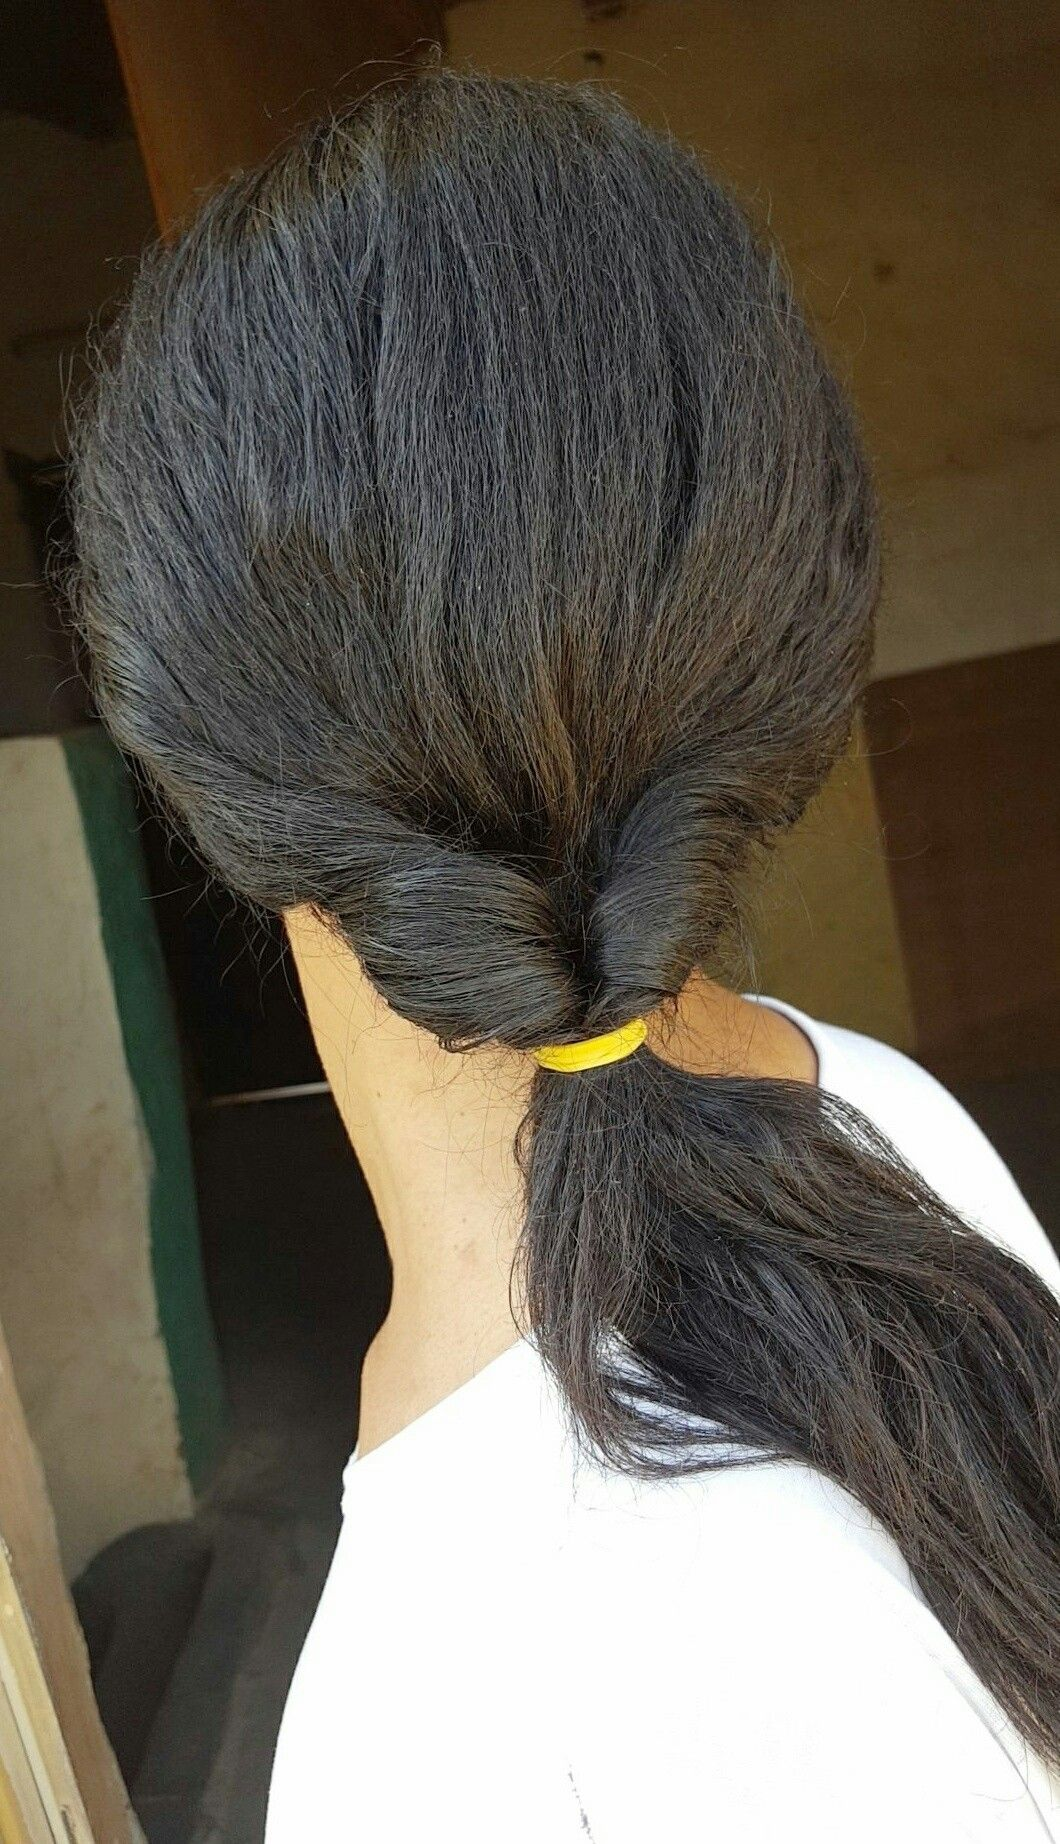 Low Ponytail Hair Hairstyle Ponytail Longhair Stylish Style Nice Nicehair Fashion Lowponytail Braids Braid تسريحة شعر ذيل الحصان المنخفضة Beautif